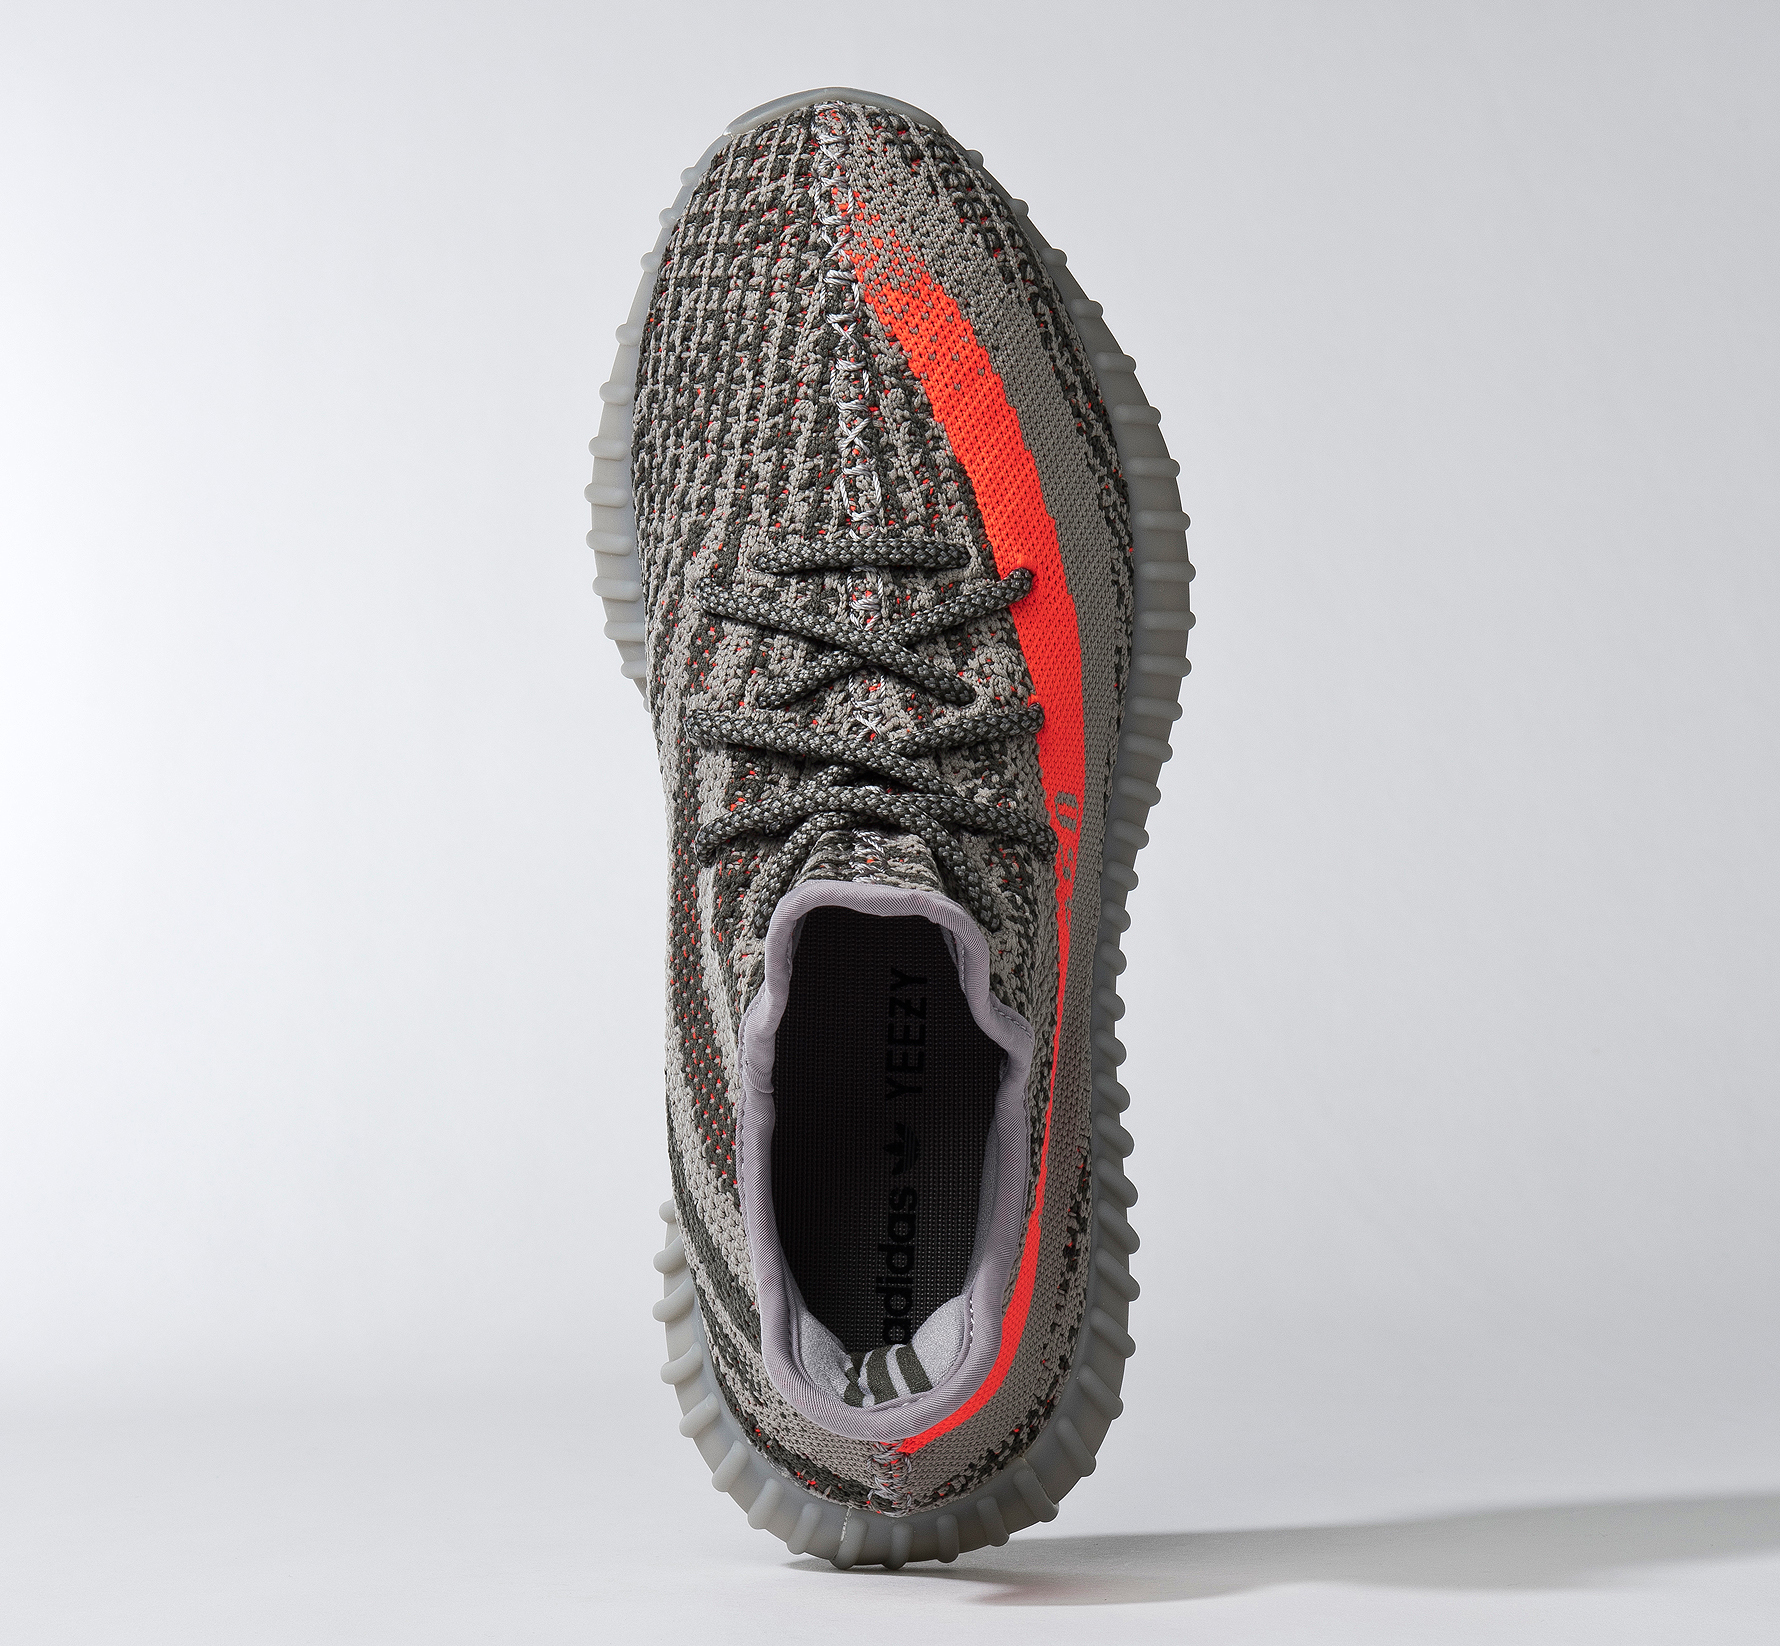 76% Off Yeezy boost 350 v2 next drop australia Factory Store